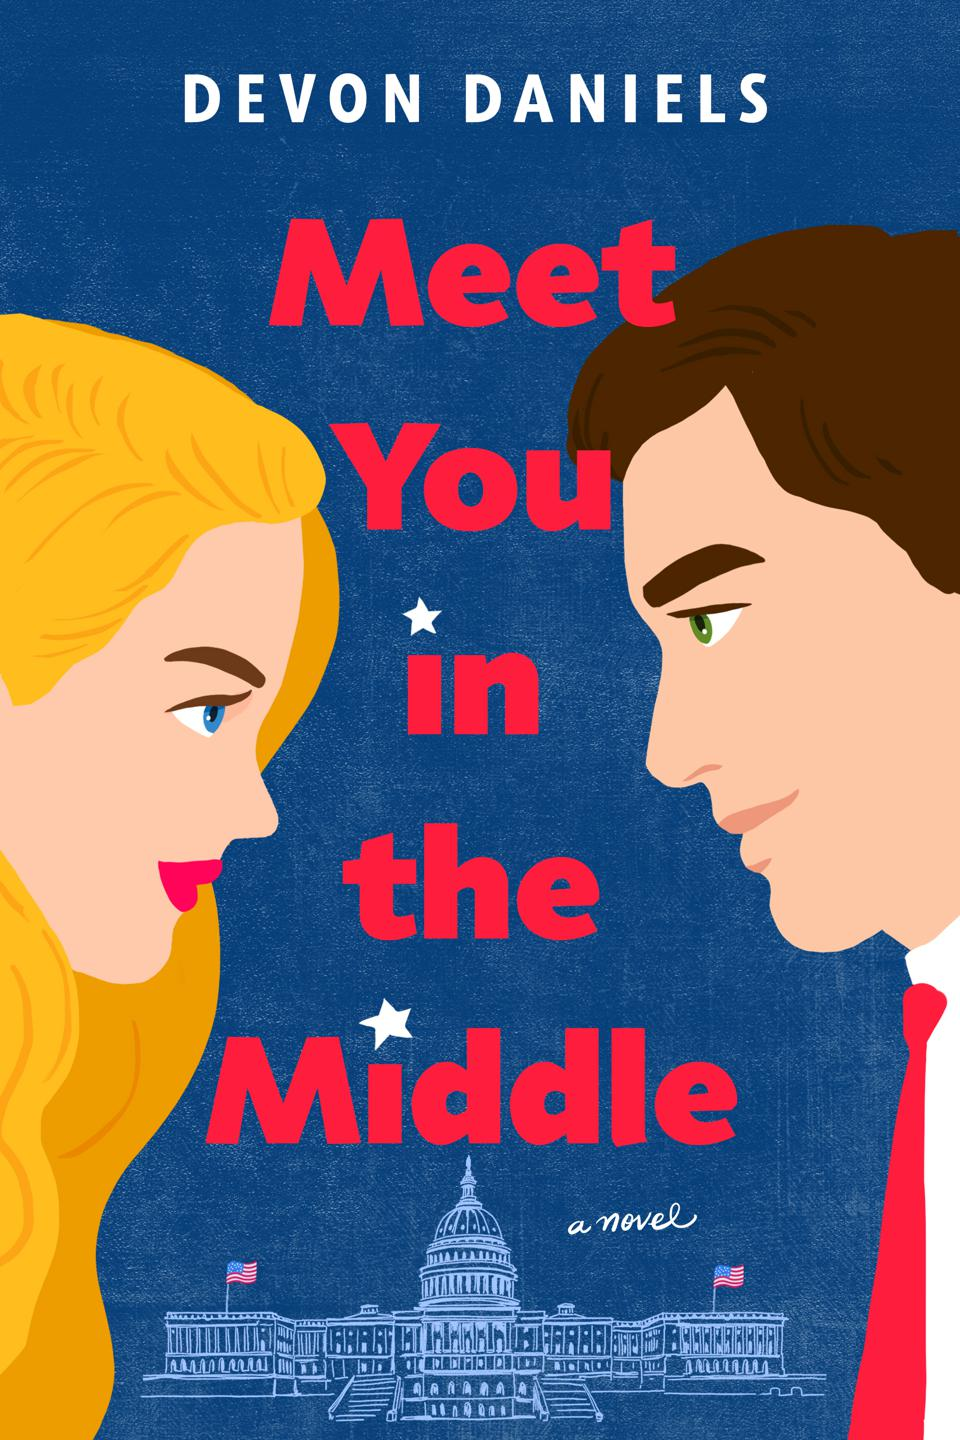 devon daniels romance meet you in the middle debut author book cover berkley